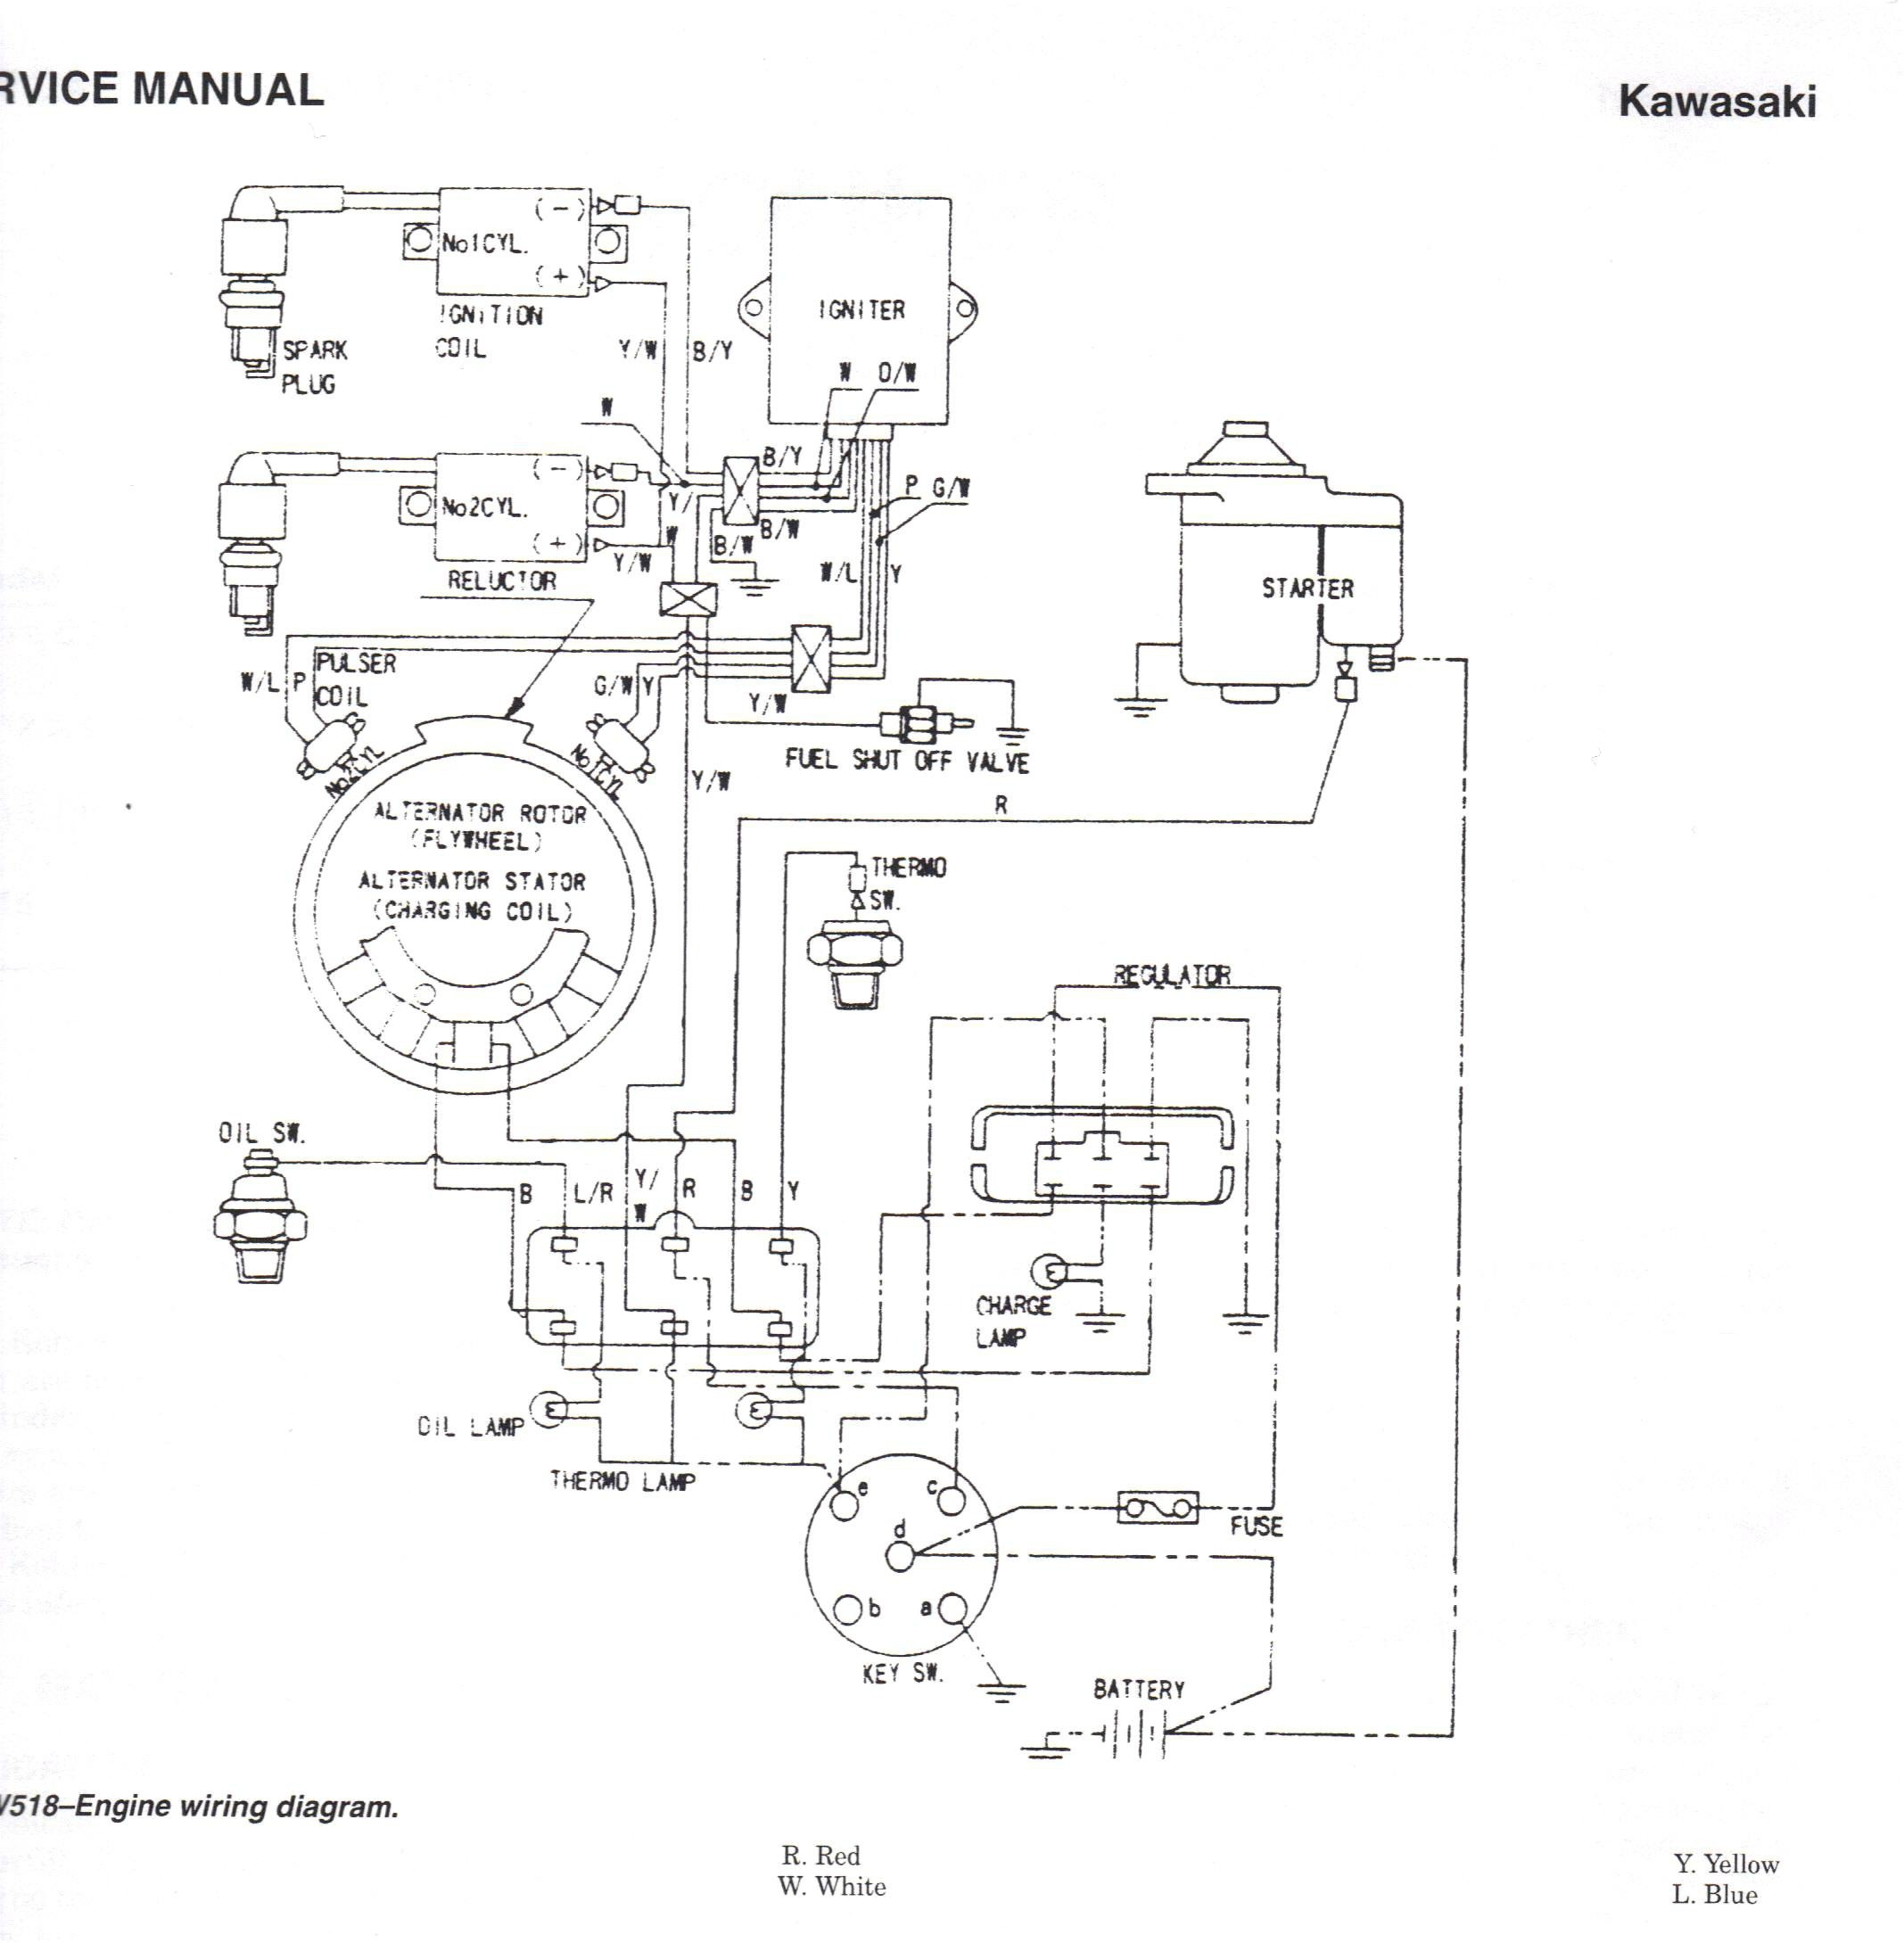 Watch besides John Deere Backhoe Loader Diesel Wiring Diagram also 8da6k 2005 Pete 387 Abs Brain Located Does Anyone together with Wiring Diagrams Freightliner Fl70 The Diagram And For likewise Showthread. on 2000 sterling wiring diagrams